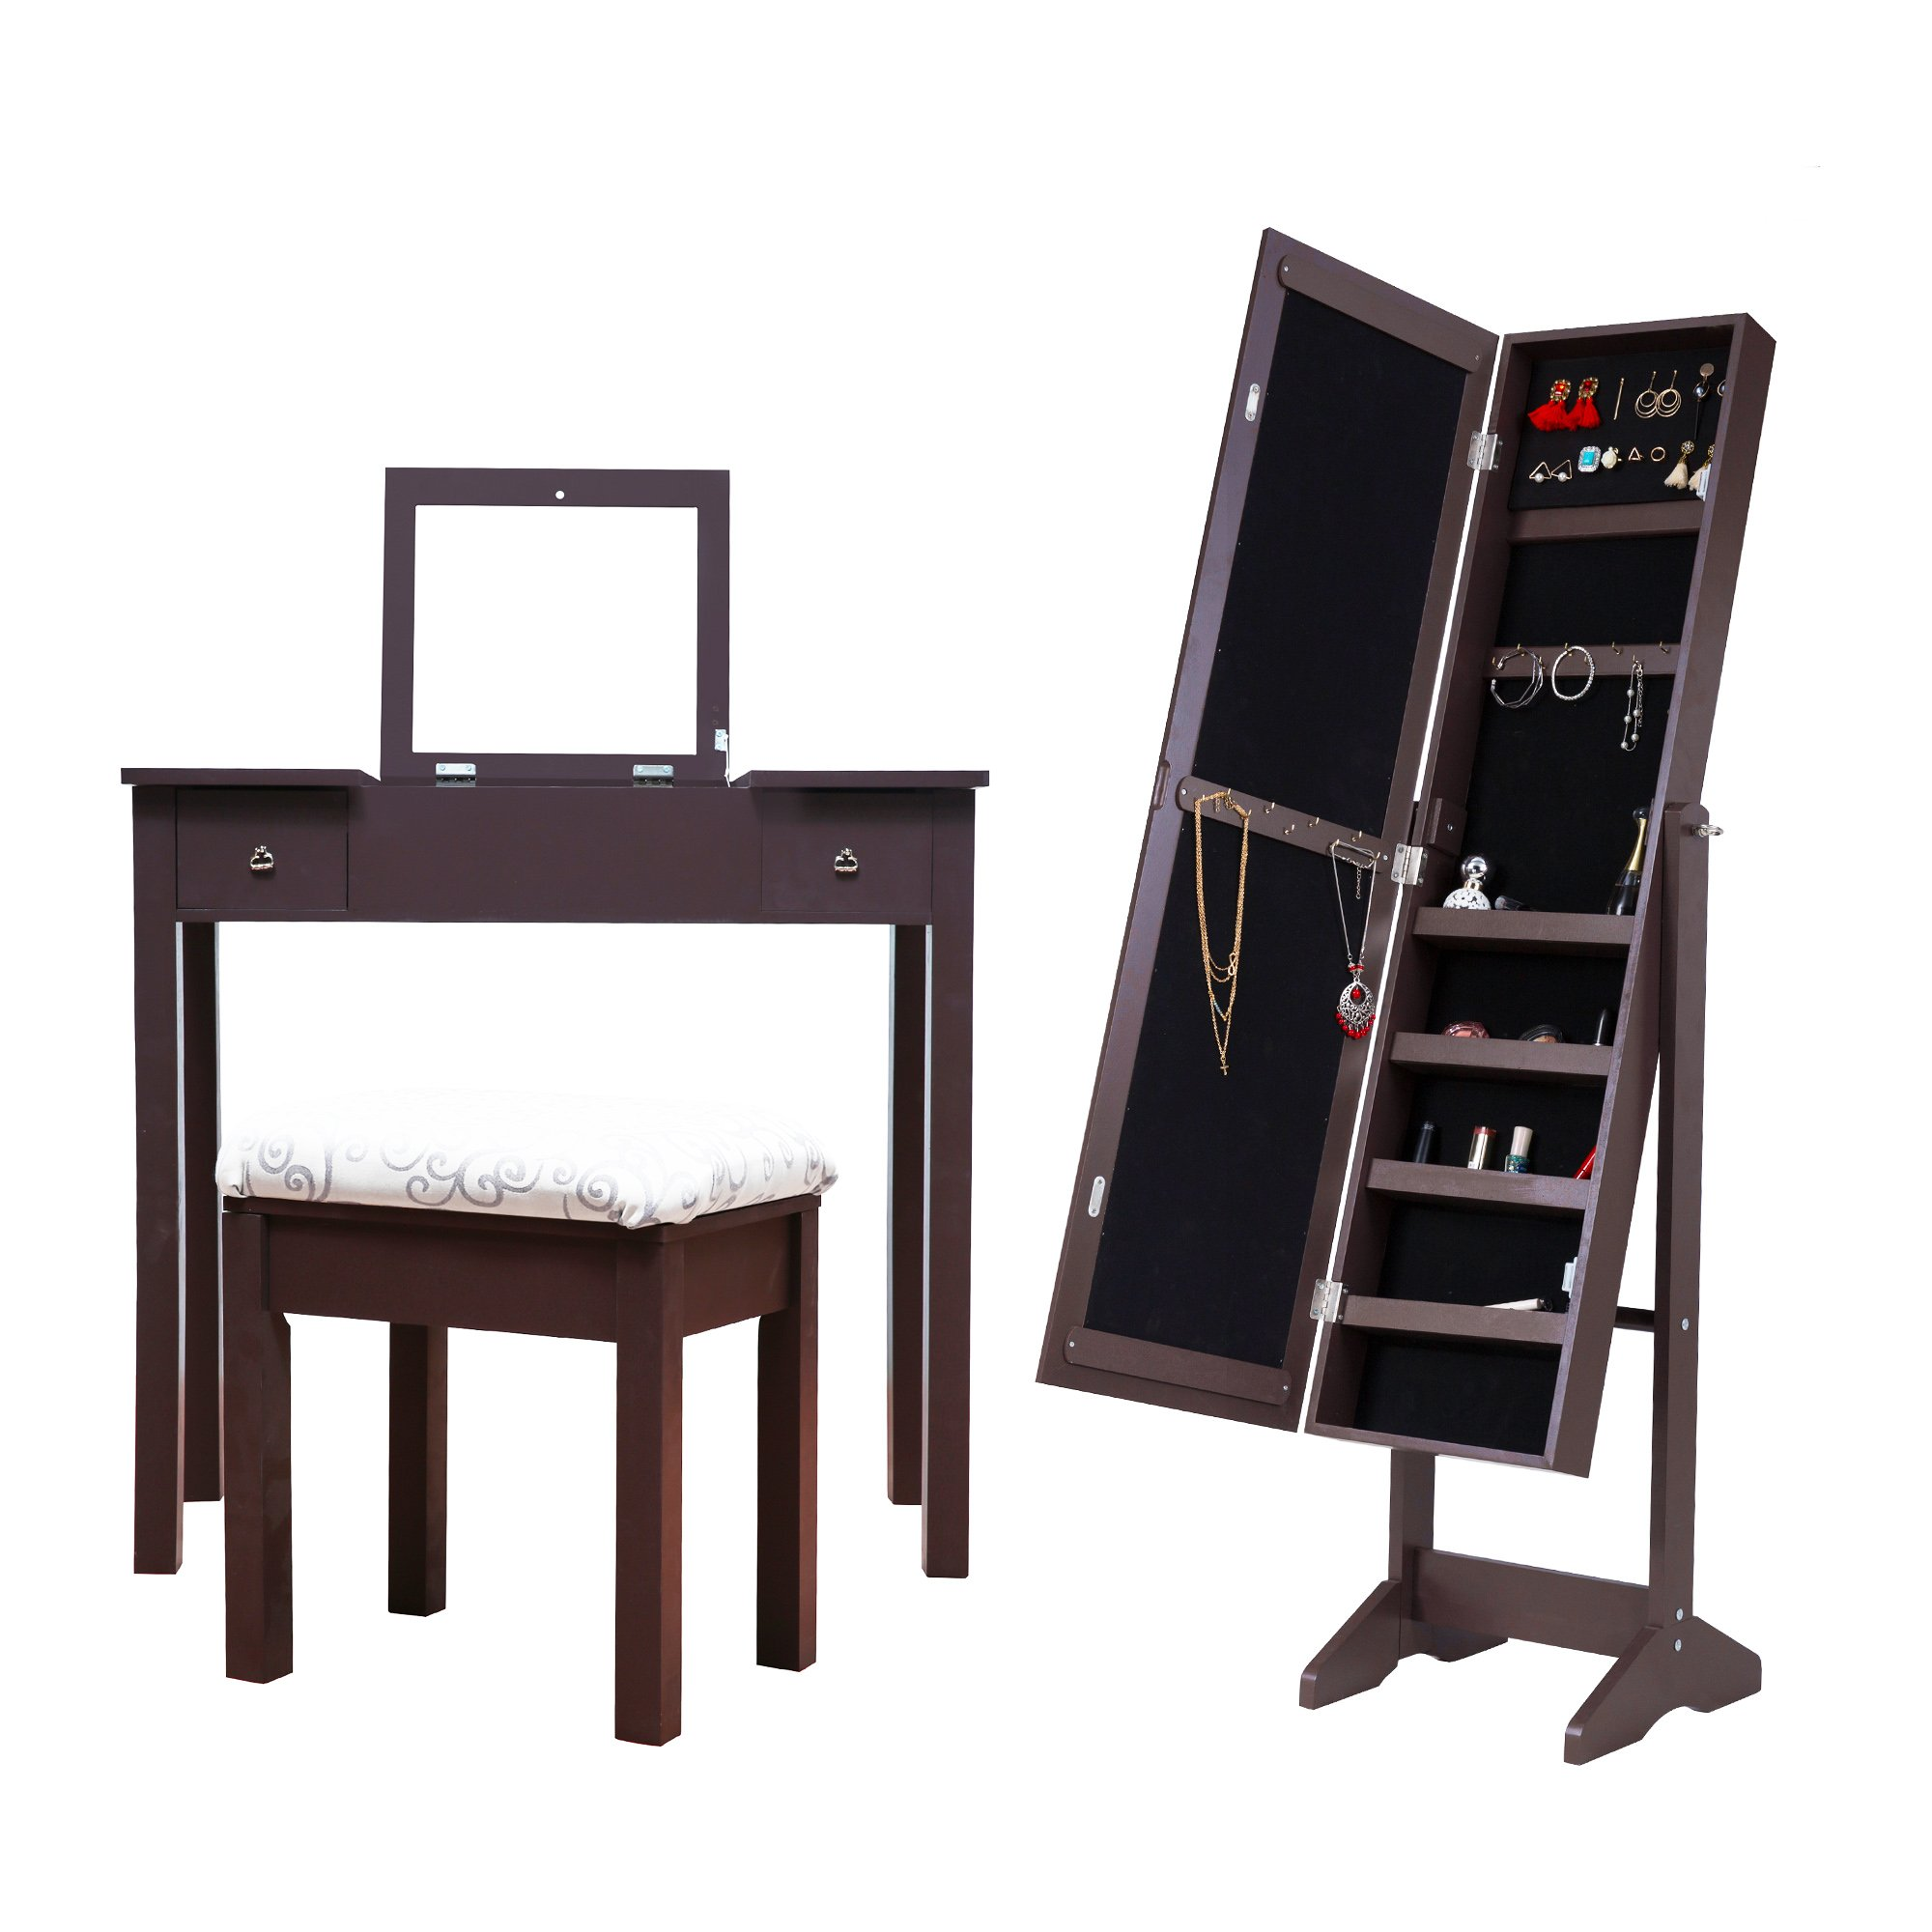 Cloud Mountain Mirrored Jewelry Armoire Cabinet Free Standing + Makeup Dressing Vanity Table Set, Espresso